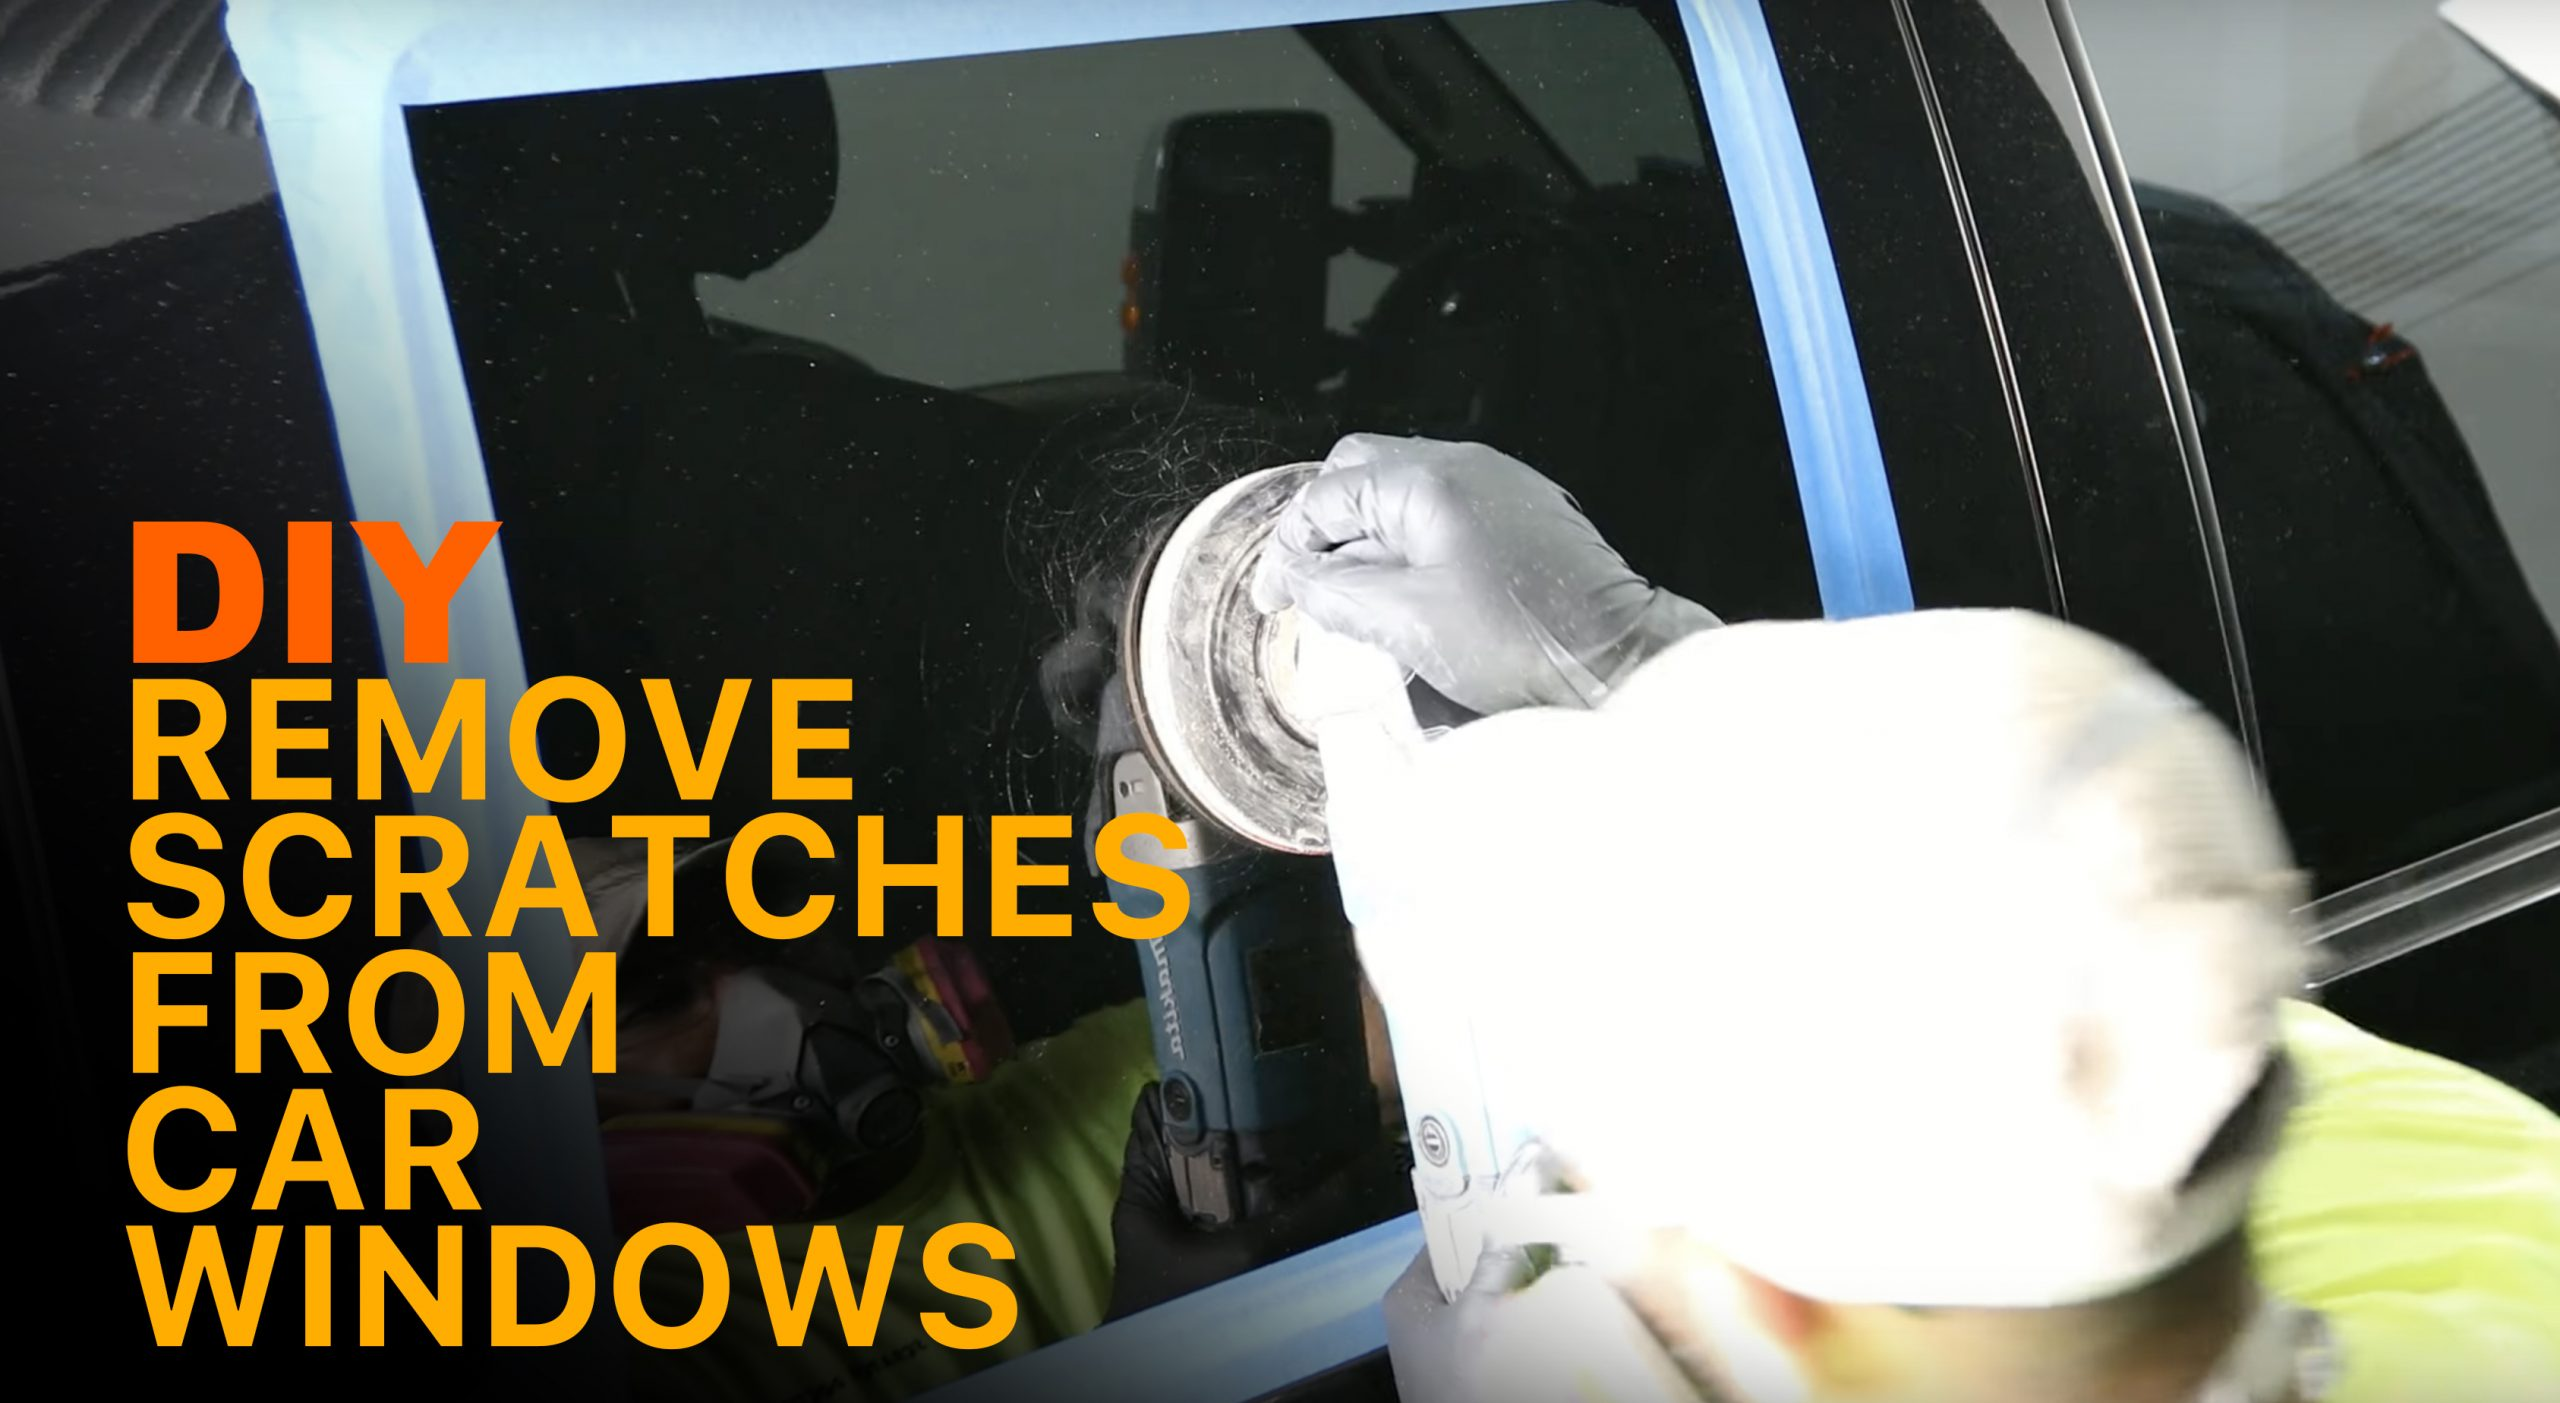 HOW TO REMOVE SCRATCH FROM CAR WINDOW CERIUM OXIDE – A FULL GUIDE BY SCRATCH DOCTORS